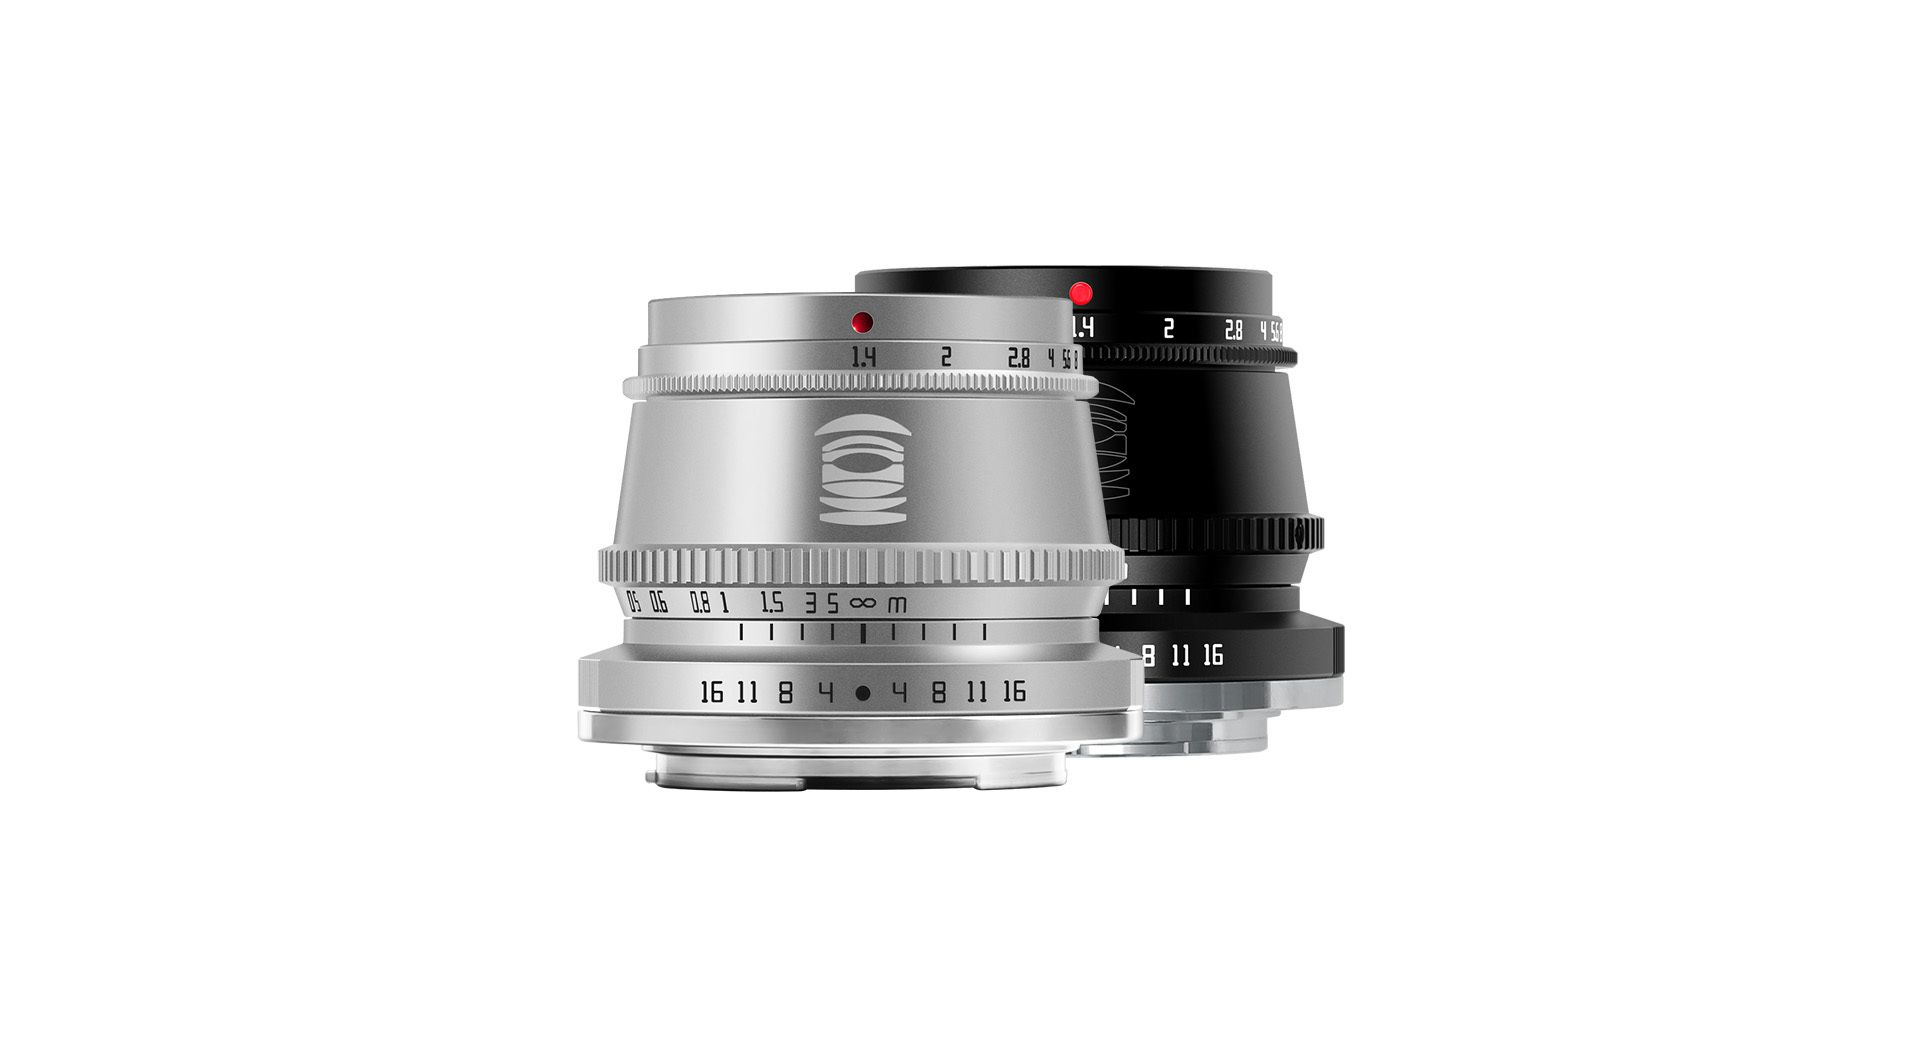 TTArtisan's APS-C 35mm F1.4 lens in black and silver on a white background